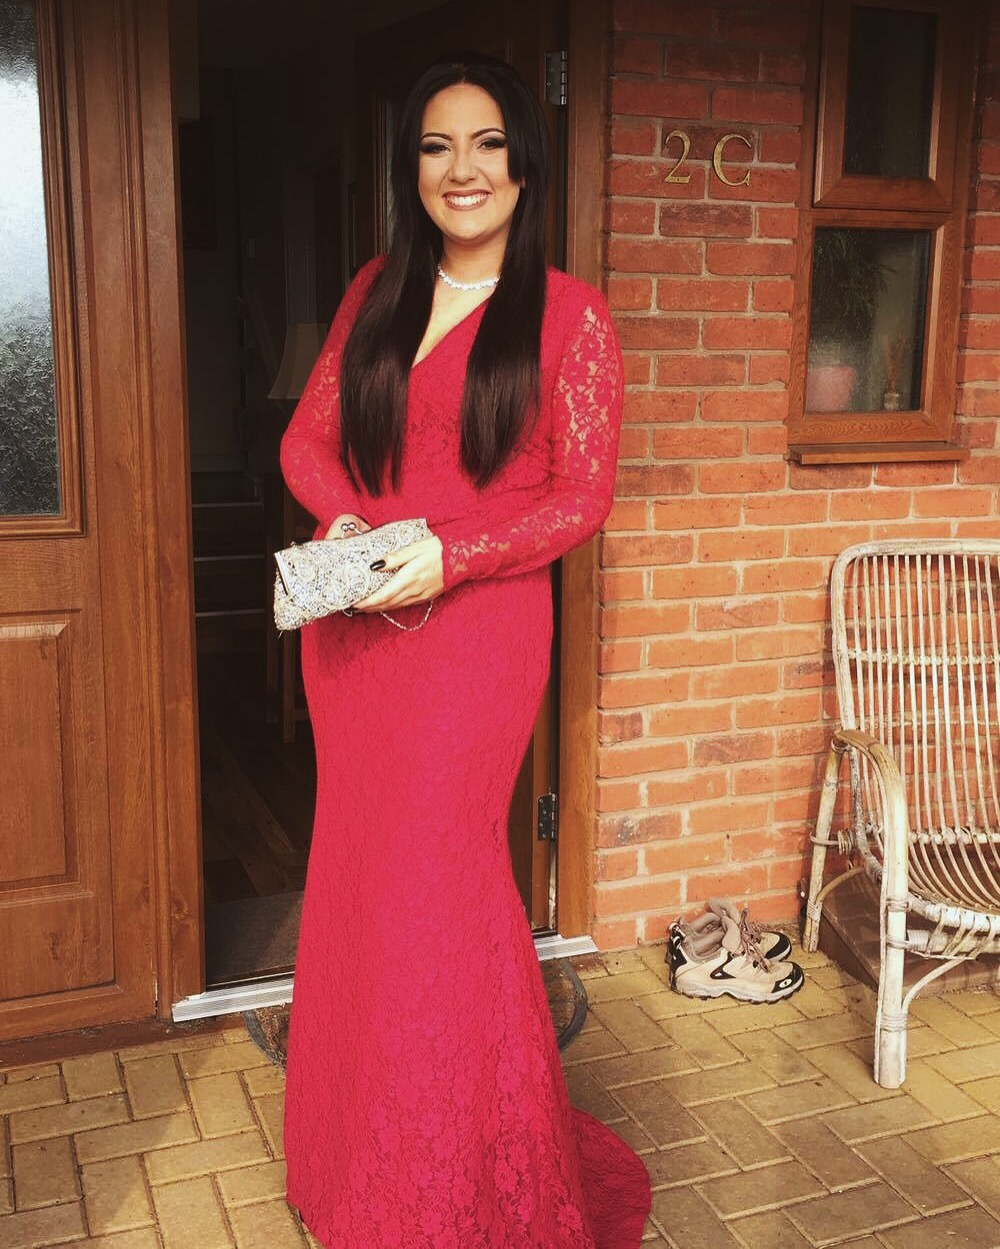 Everyone loved the dress Xx thankyou for everything you did!